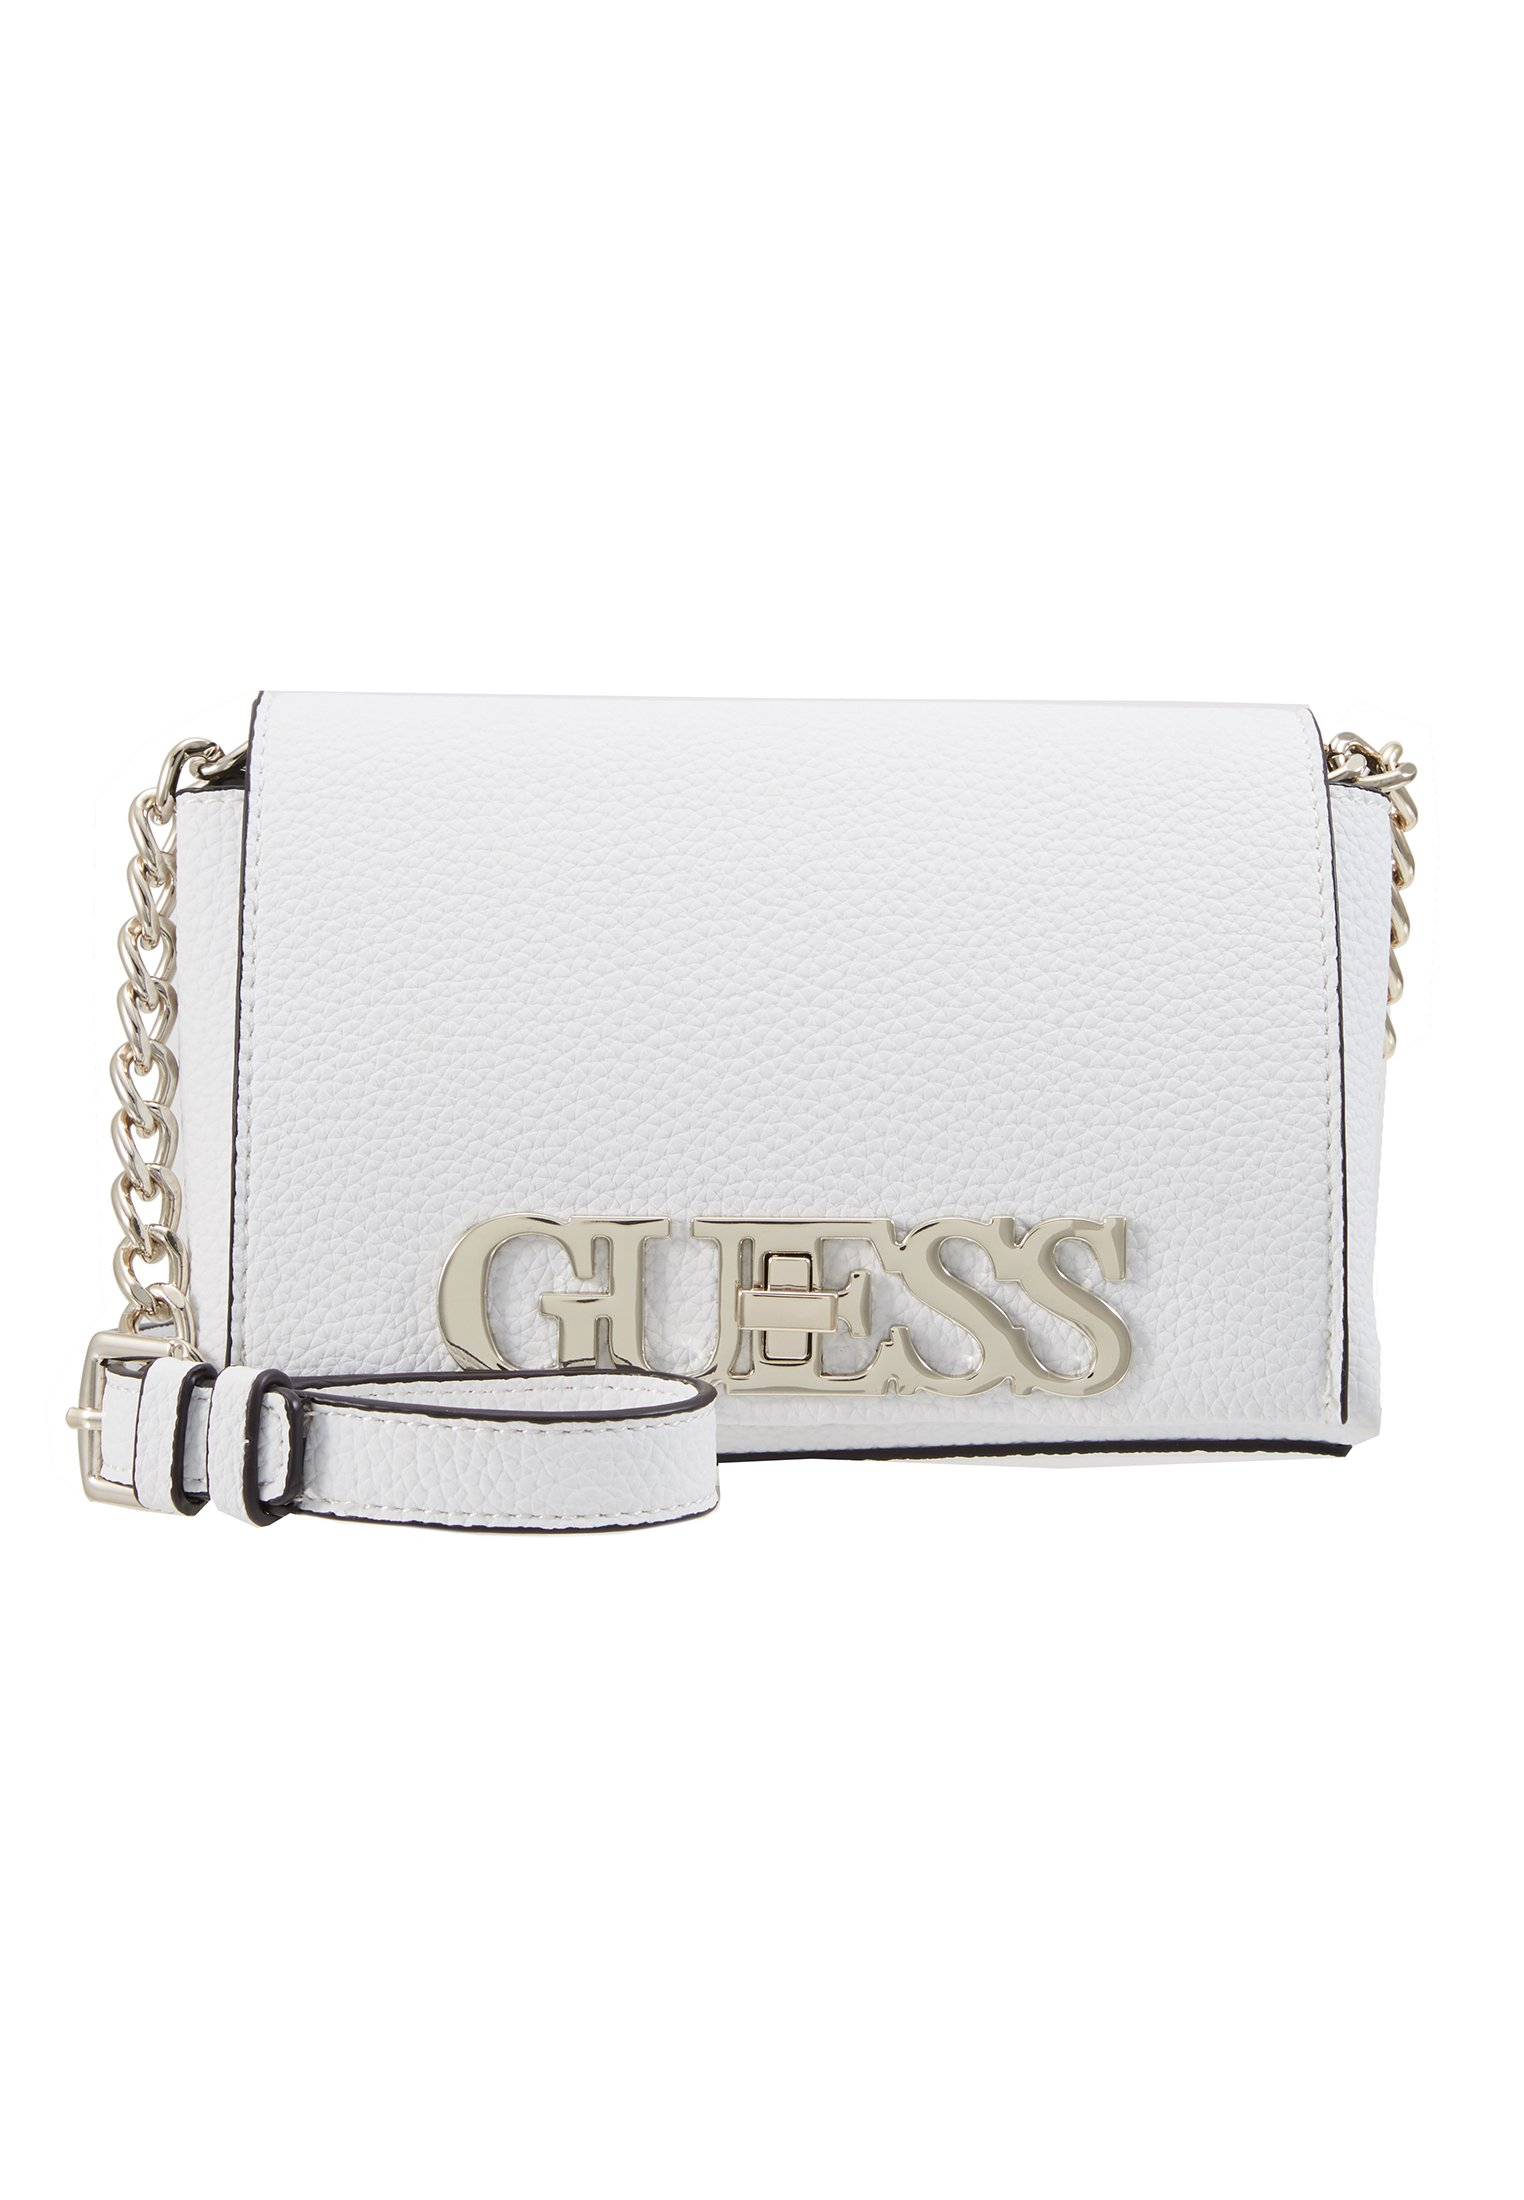 Guess Uptown Chic Mini Xbody Flap - Sac Bandoulière White